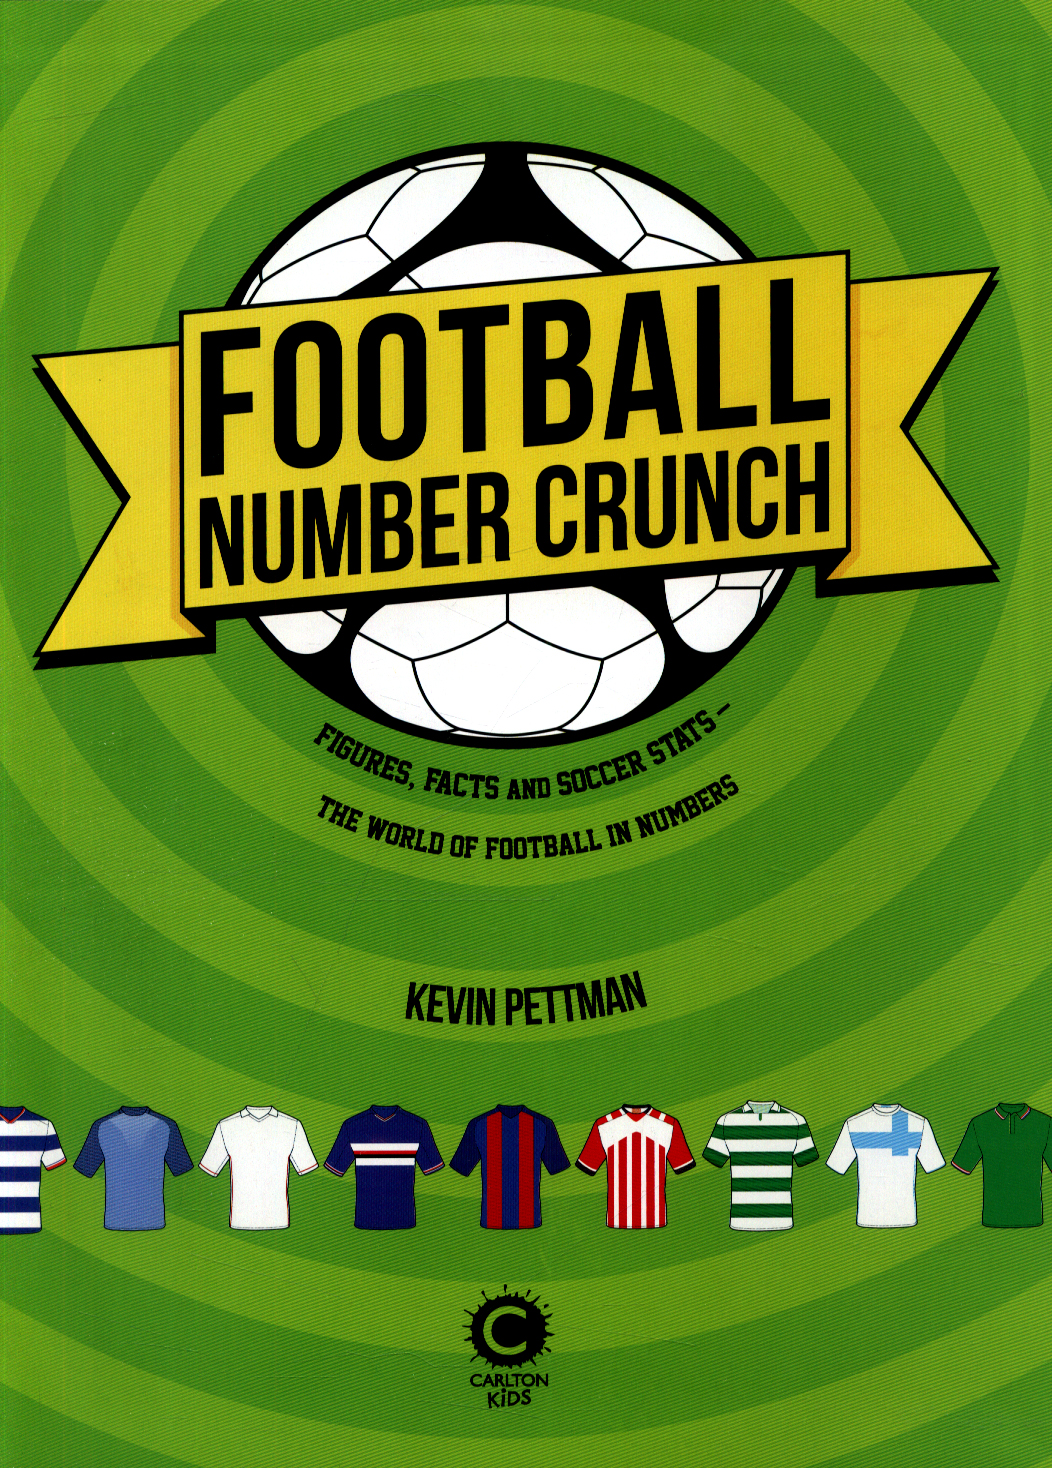 Football number crunch : figures, facts and soccer stats